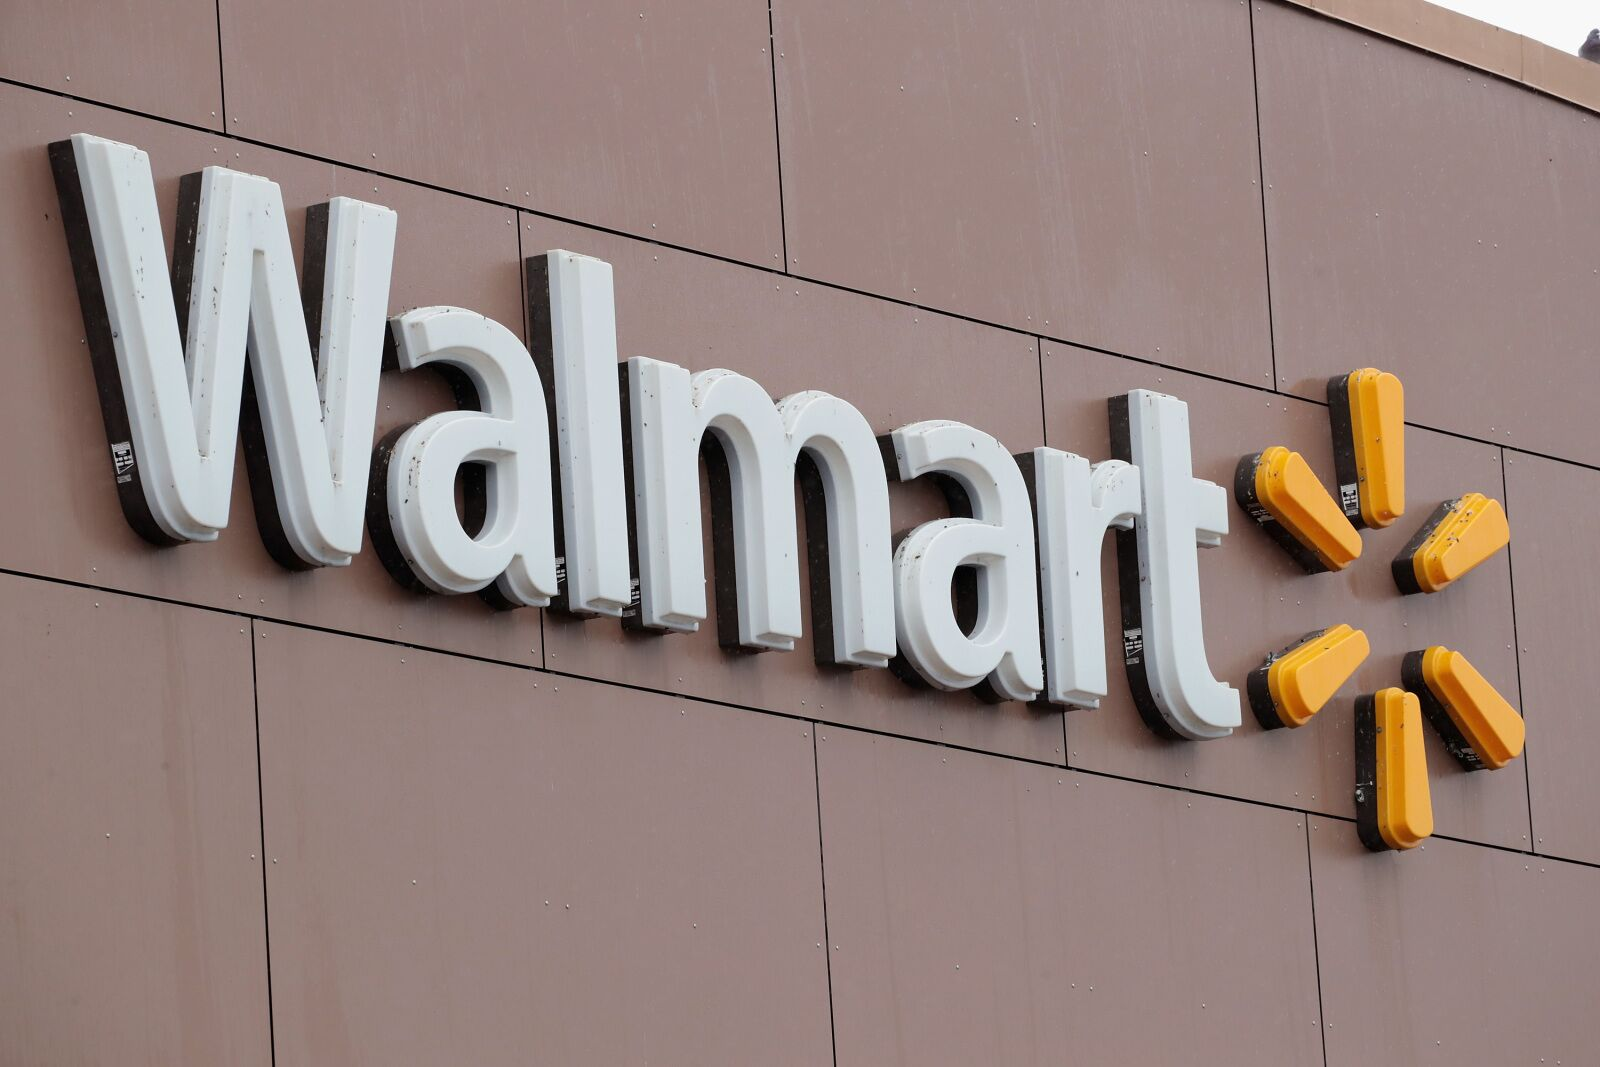 Black Friday 2018: Walmart deals for PS4, Xbox One and Switch